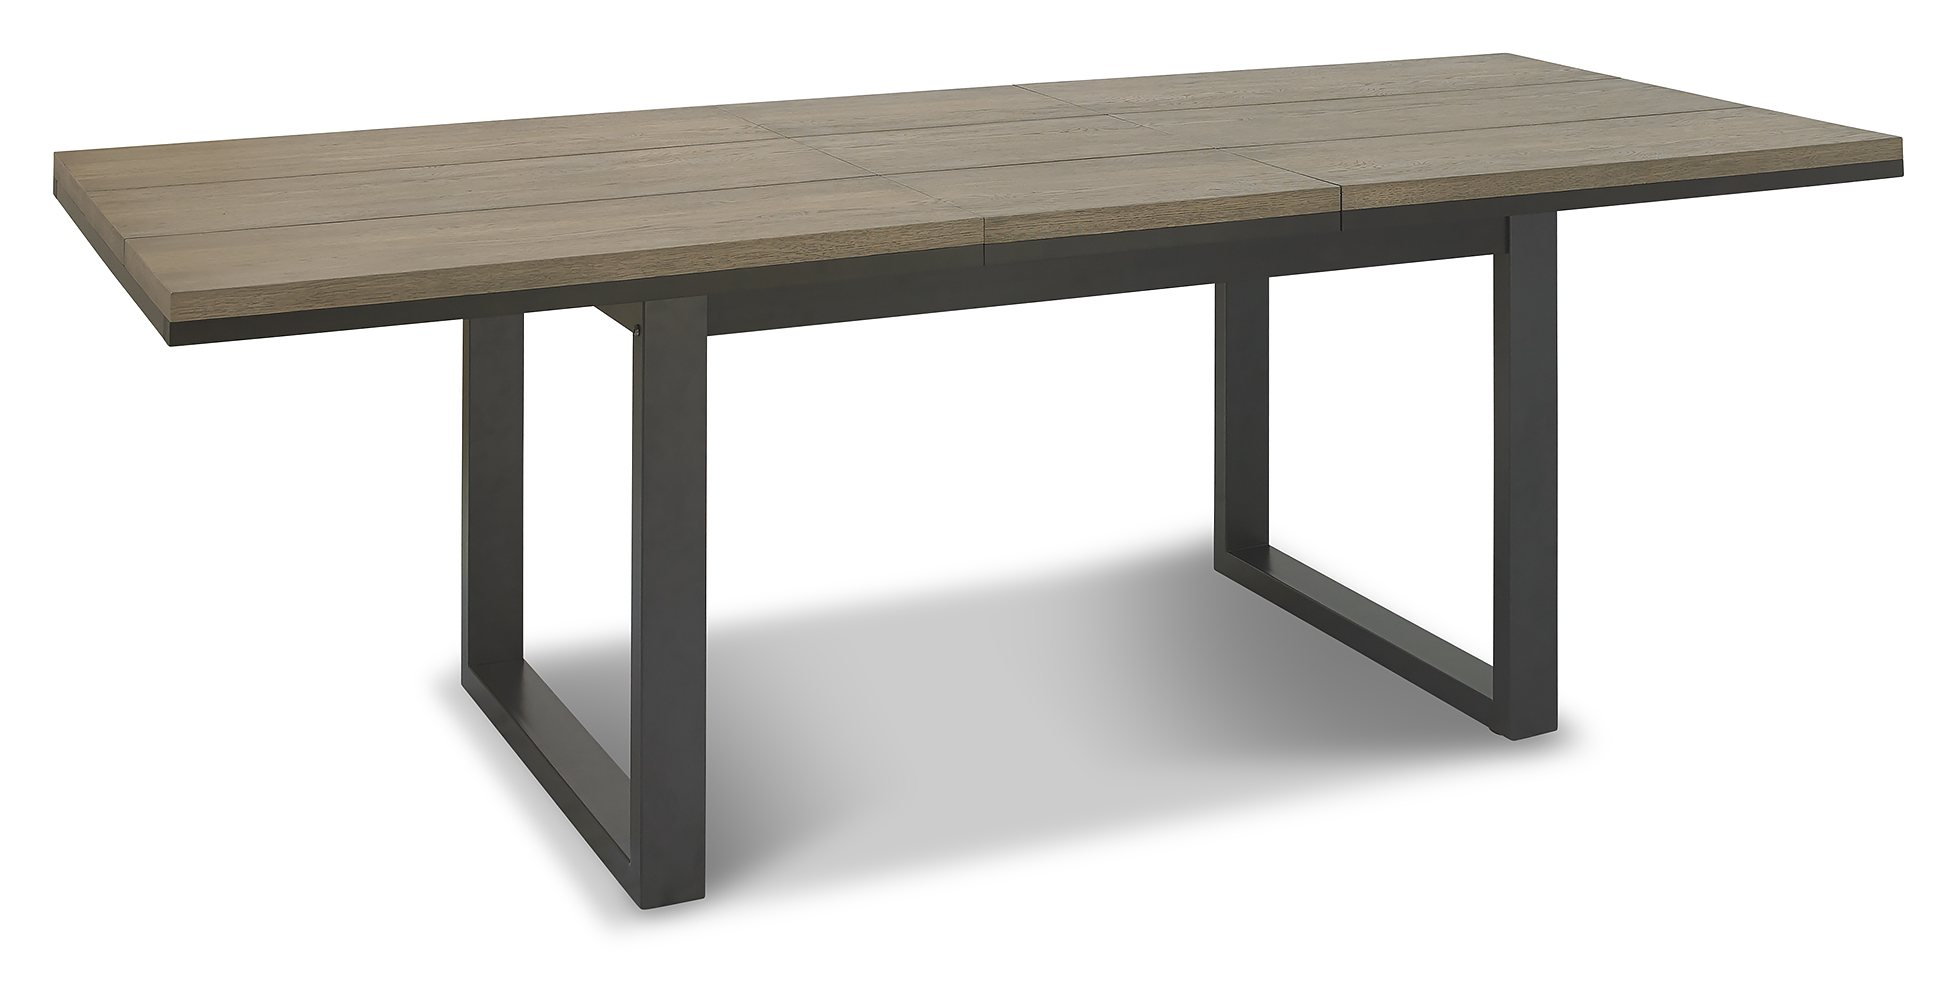 BRININDISI 6-8 EXTENDING DINING TABLE - OPENED